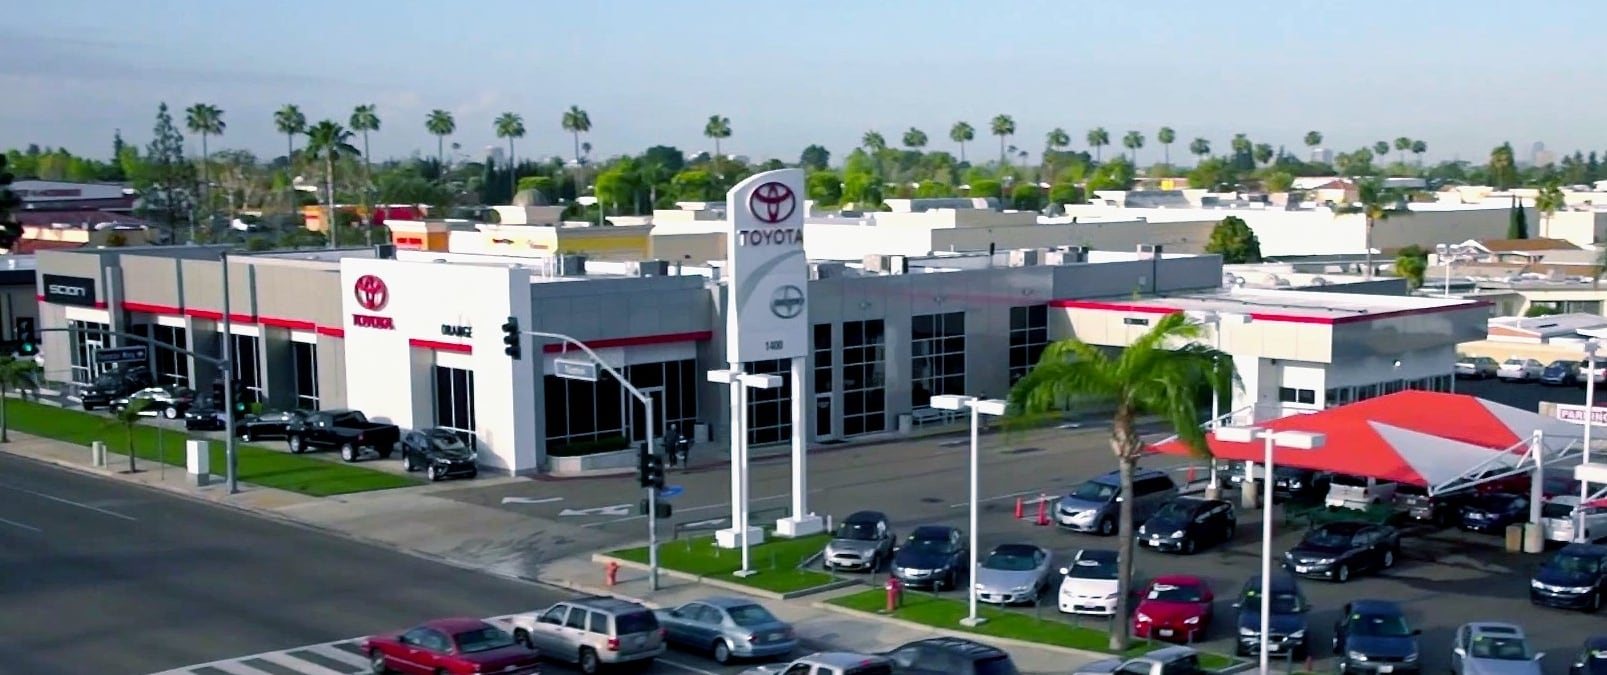 Tustin Toyota Service >> About Our Dealership | Car Dealer in Orange, CA | Toyota ...